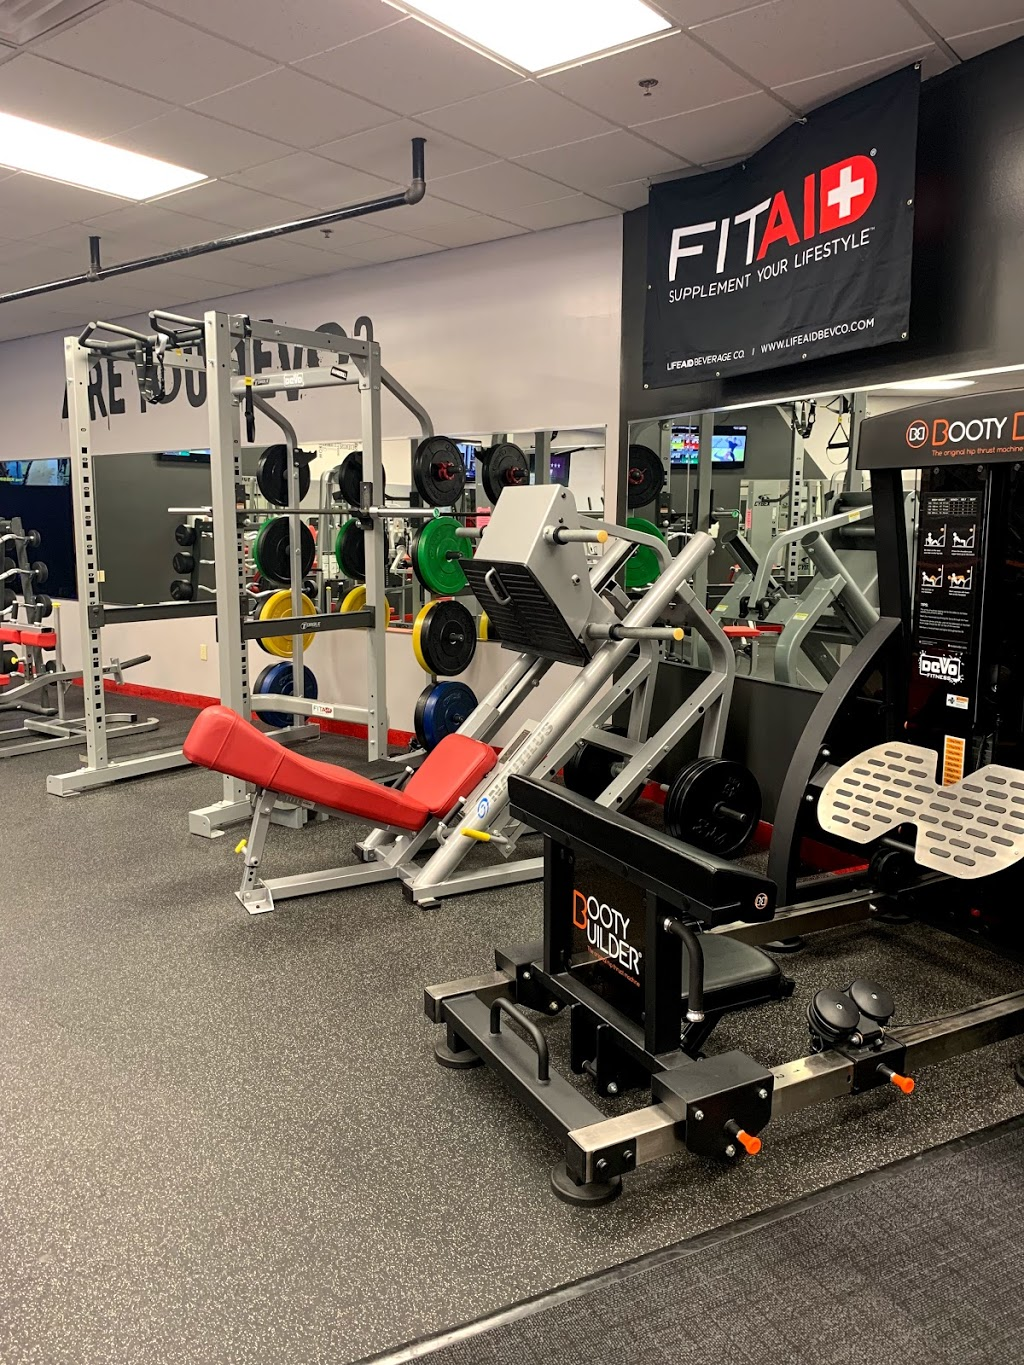 Devo Fitness - gym    Photo 7 of 8   Address: 455 99th Ave NW #170, Coon Rapids, MN 55433, USA   Phone: (763) 762-6914